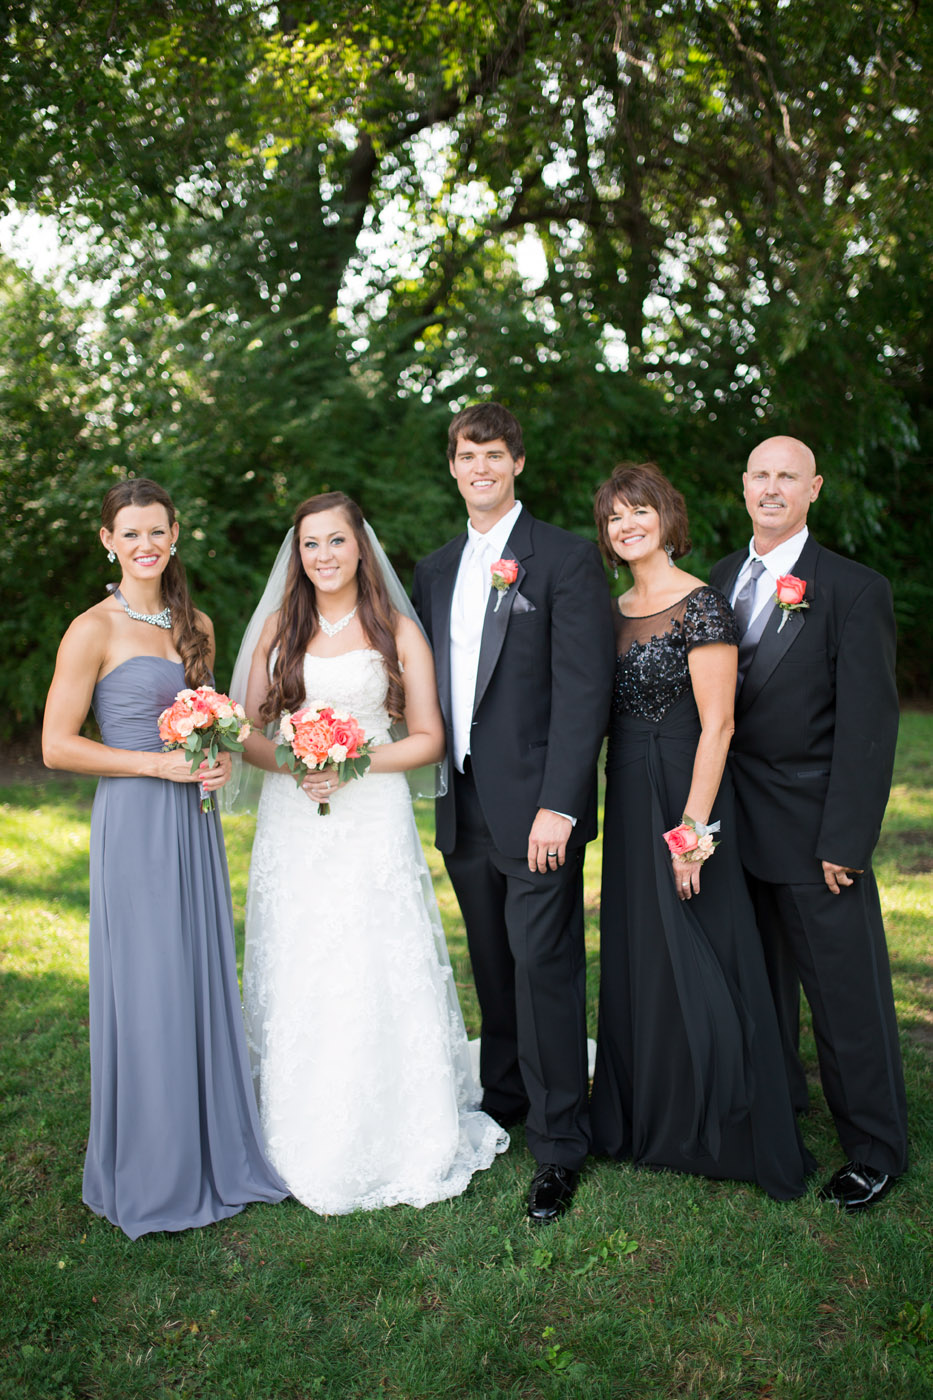 Sinclair Wedding 1 1378.jpg